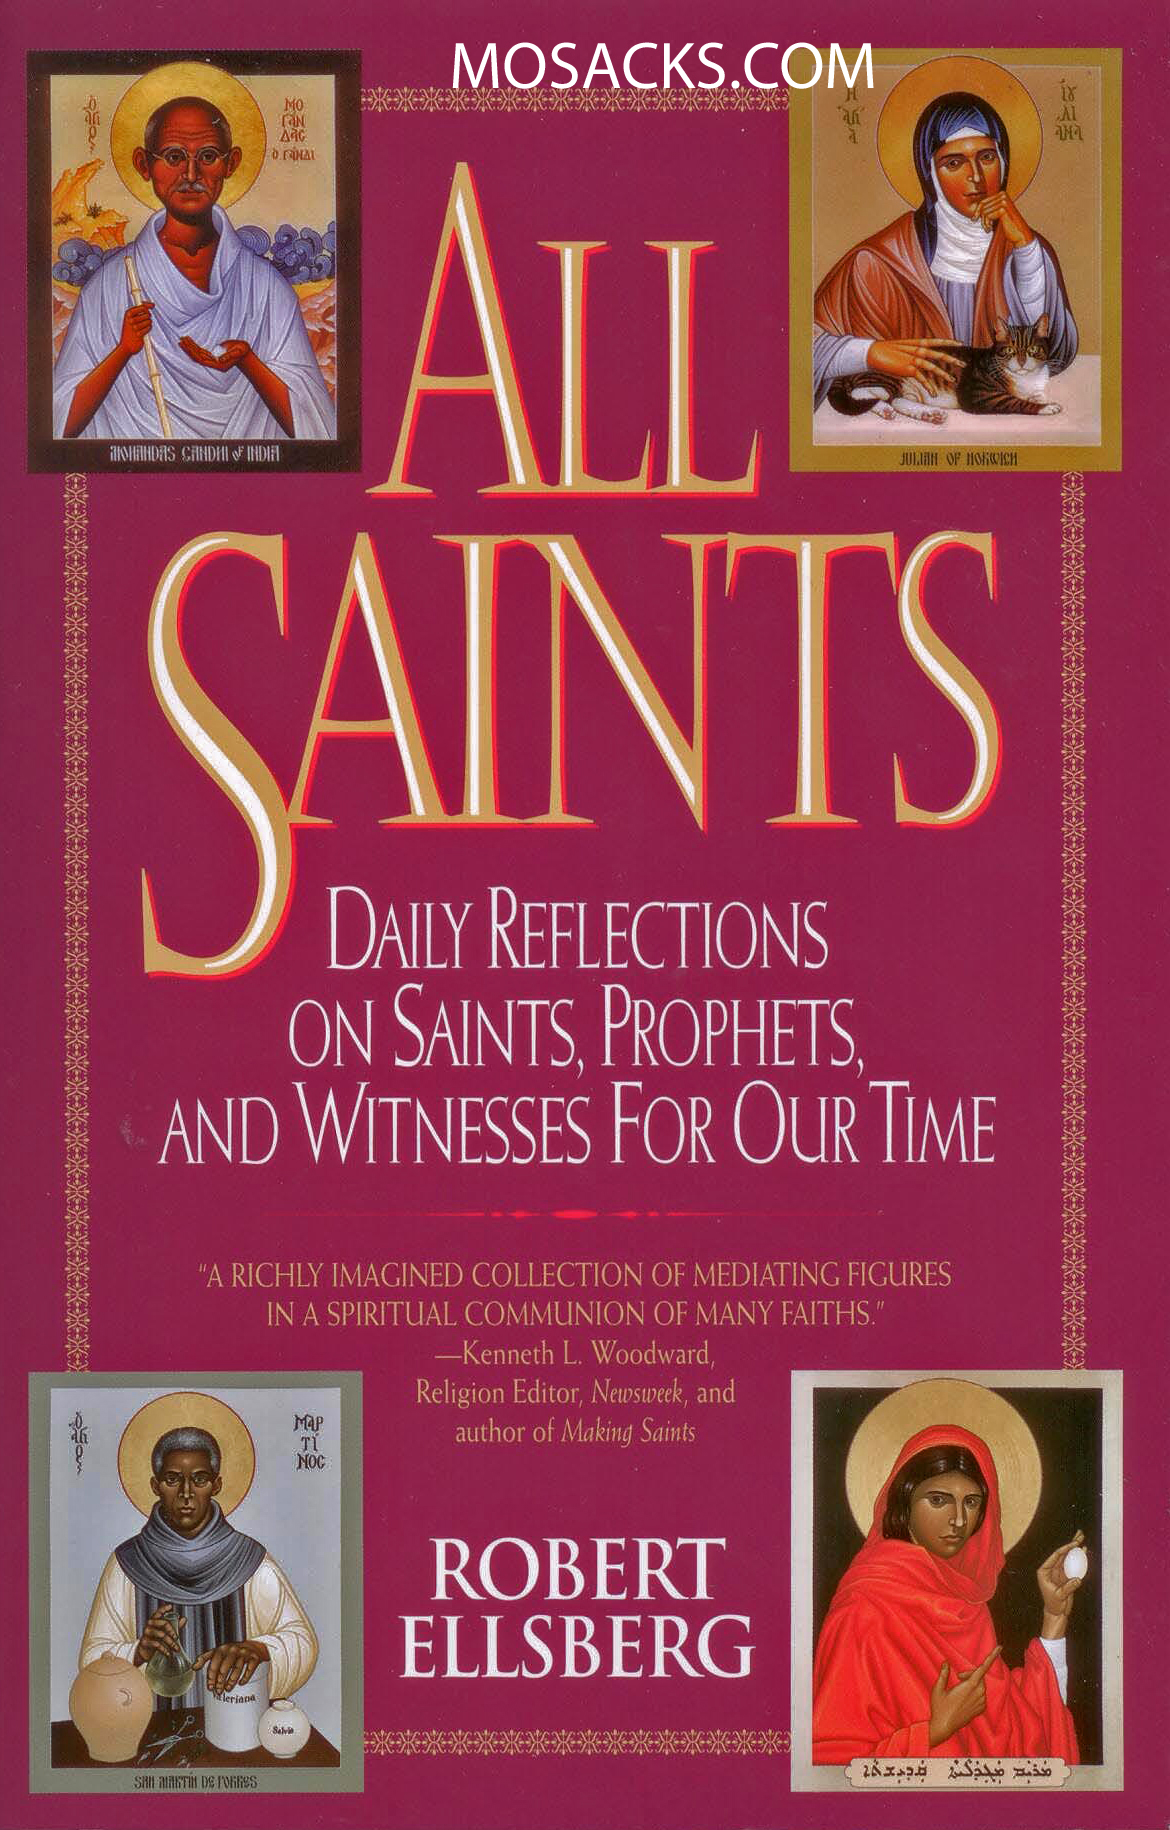 All Saints Daily Reflections by R. Ellsberg